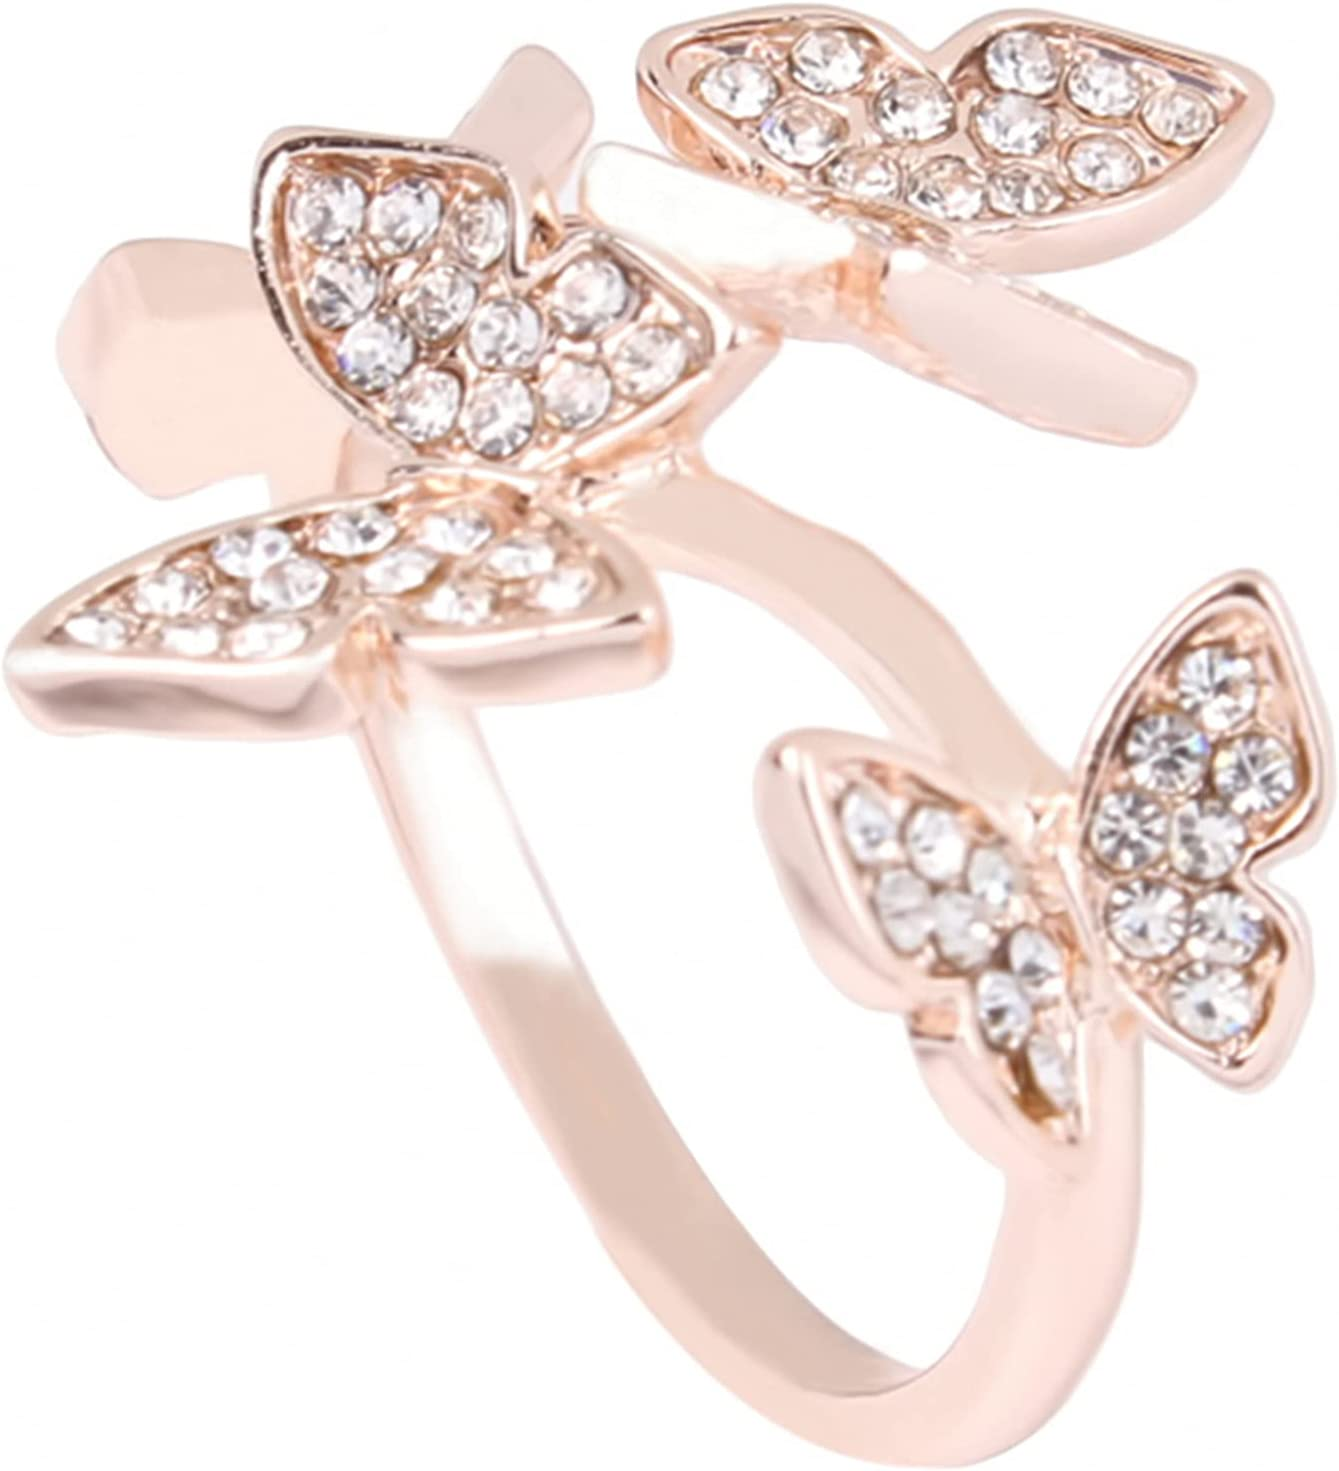 LILIYUAN Cute Crystal Butterfly Rings Adjustable Butterfly Toe Ring Open Ring for Women Girls